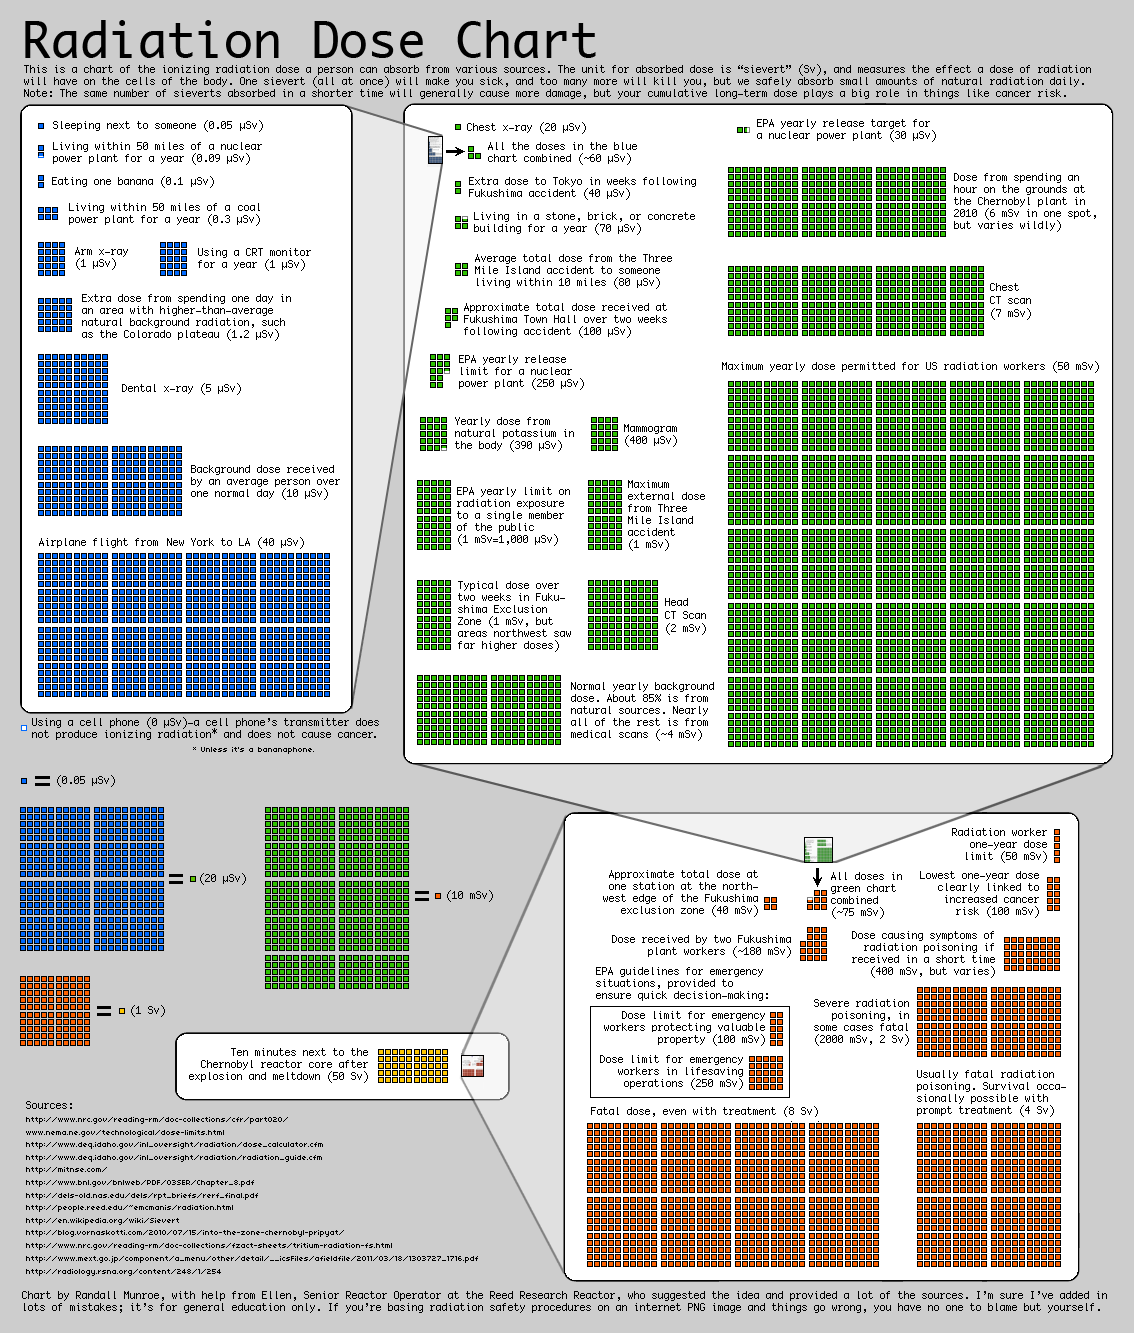 Randall Munroe's Radiation Comparison (XKCD)